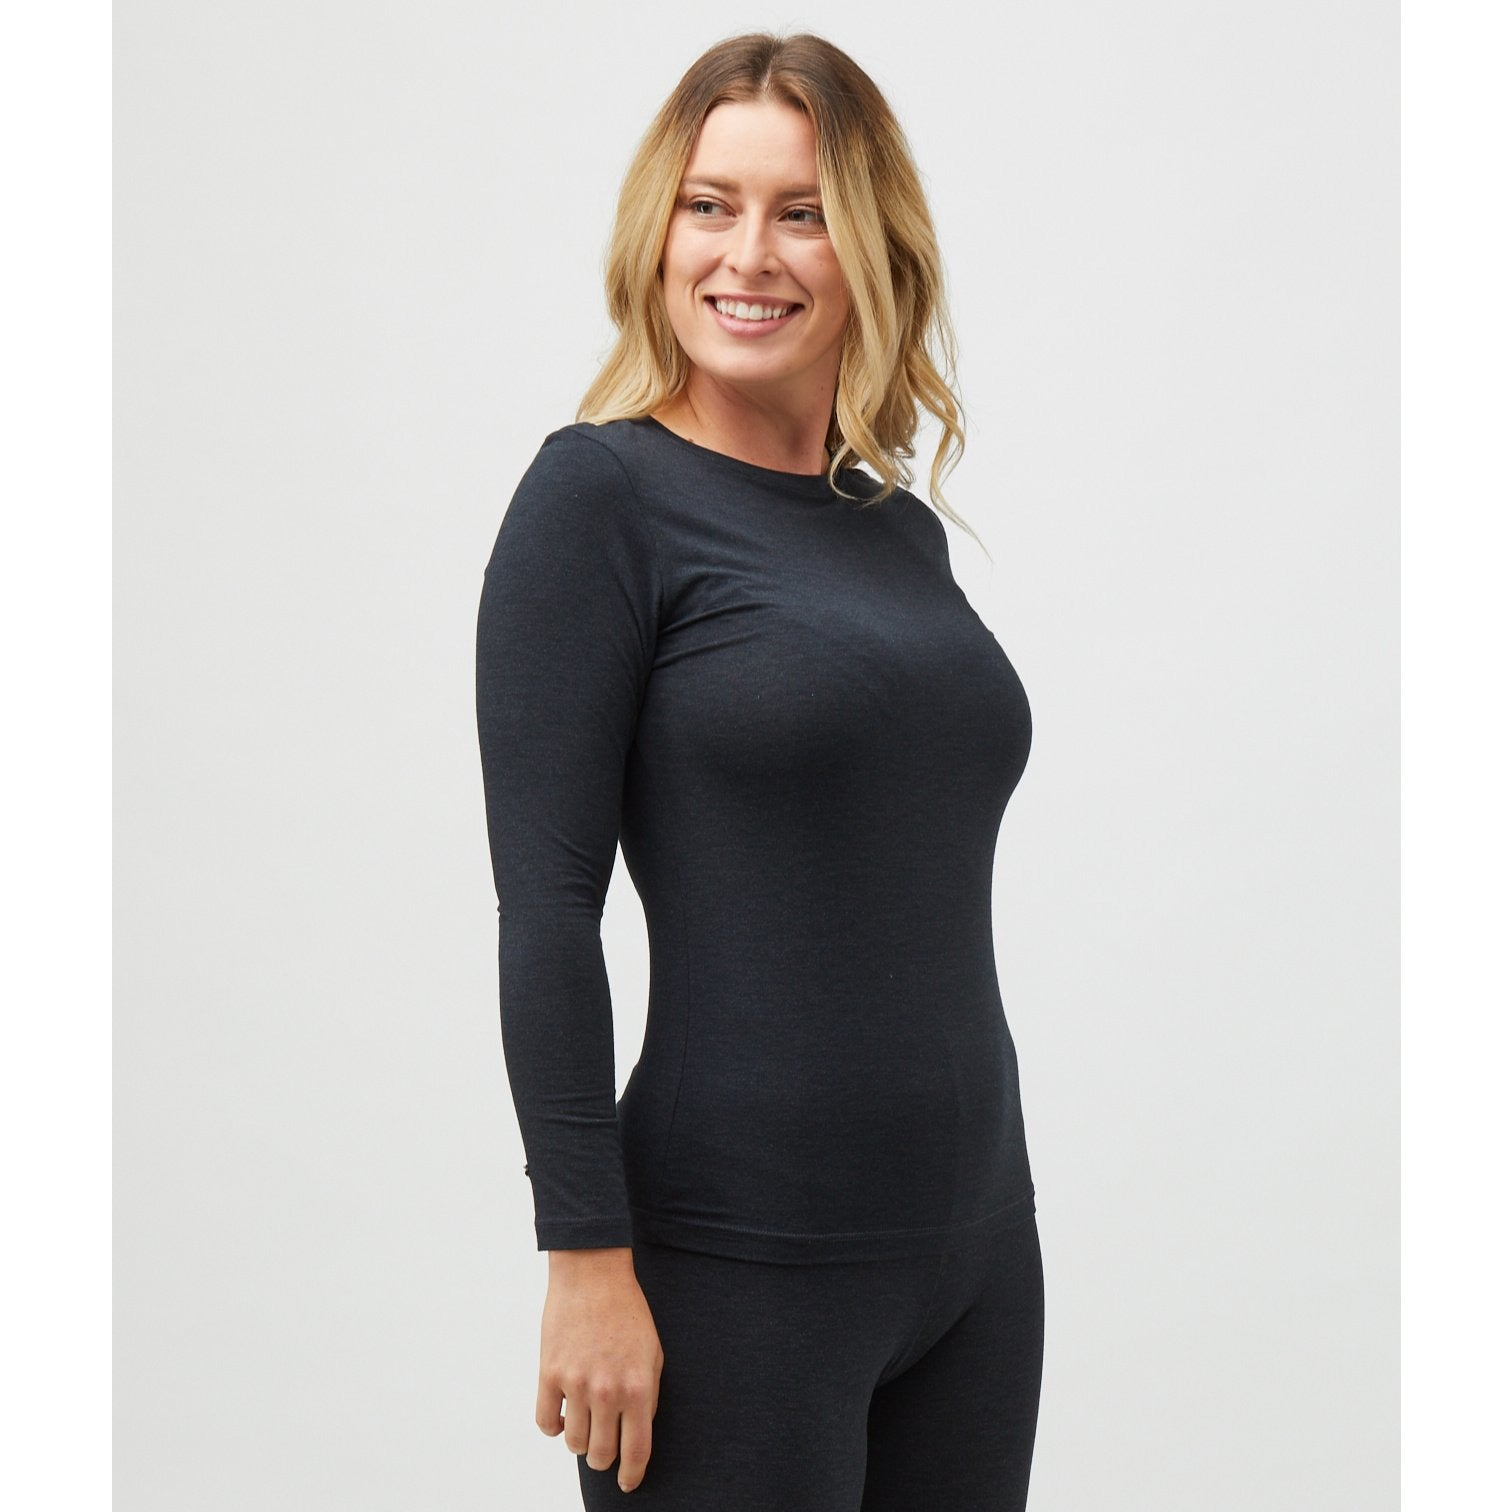 Tani Round neck Long sleeve fitted Tee Top in Graphite Marle